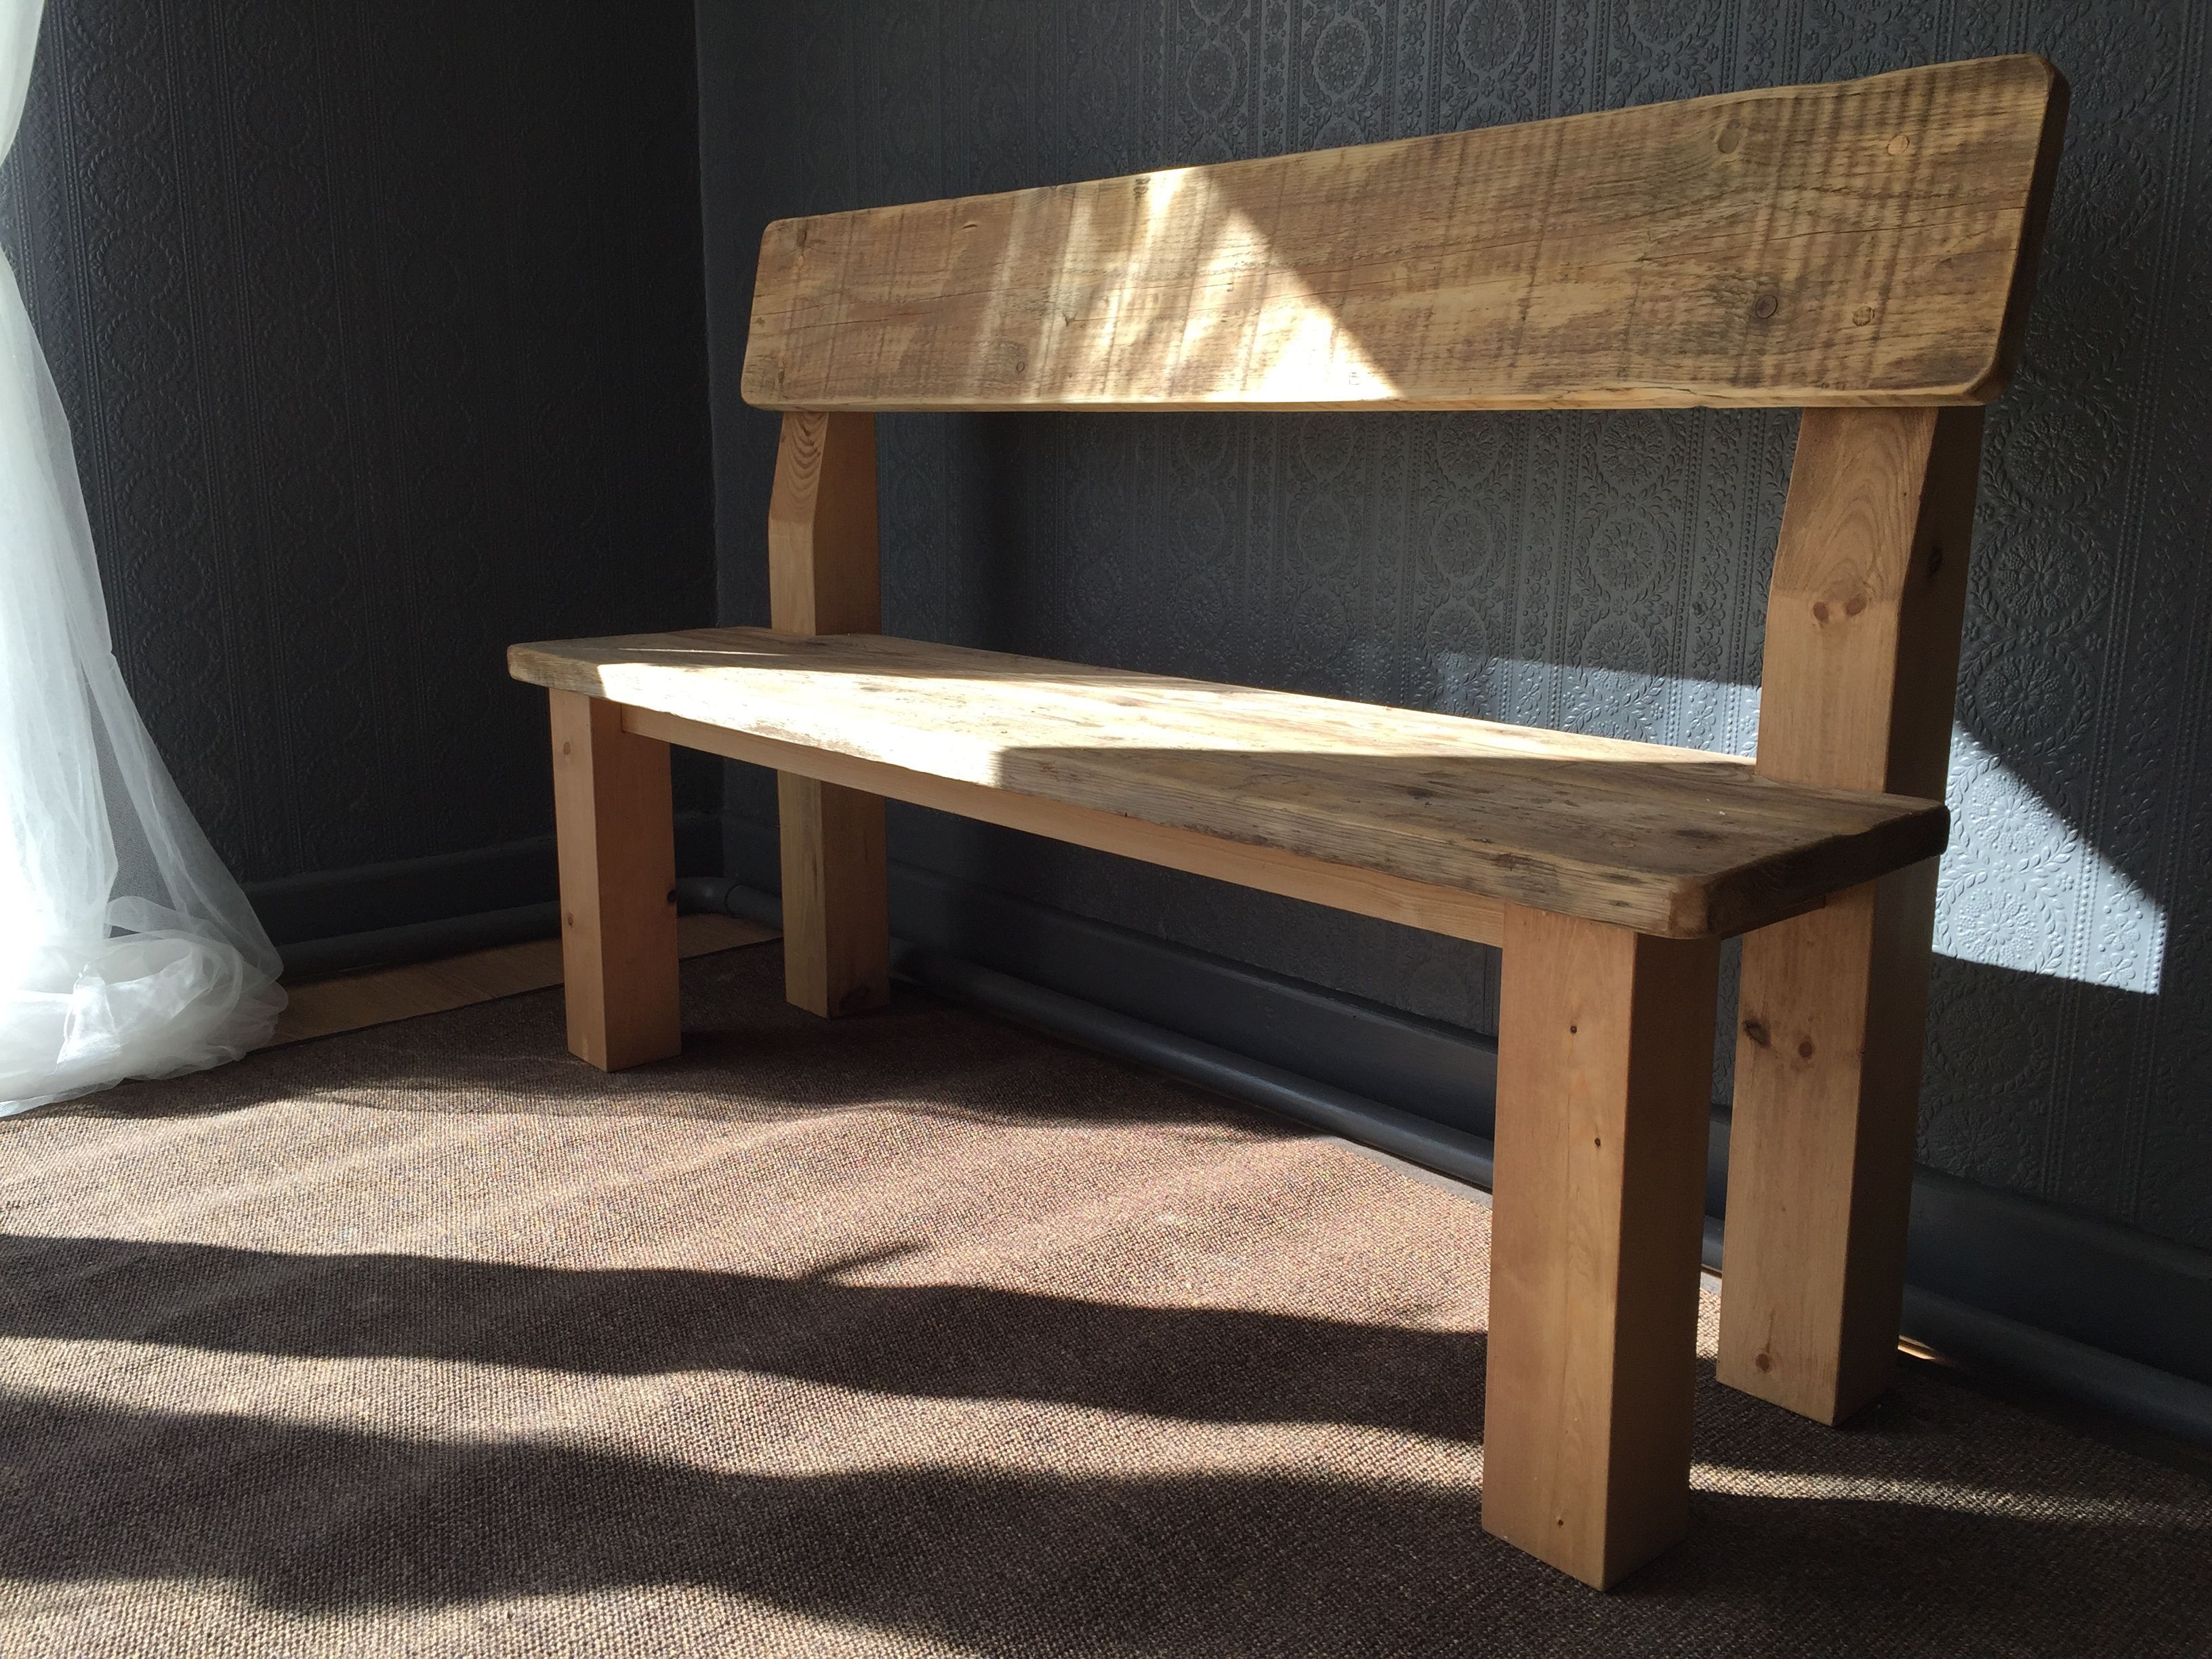 Dining Bench With Back Rest Handmadebench